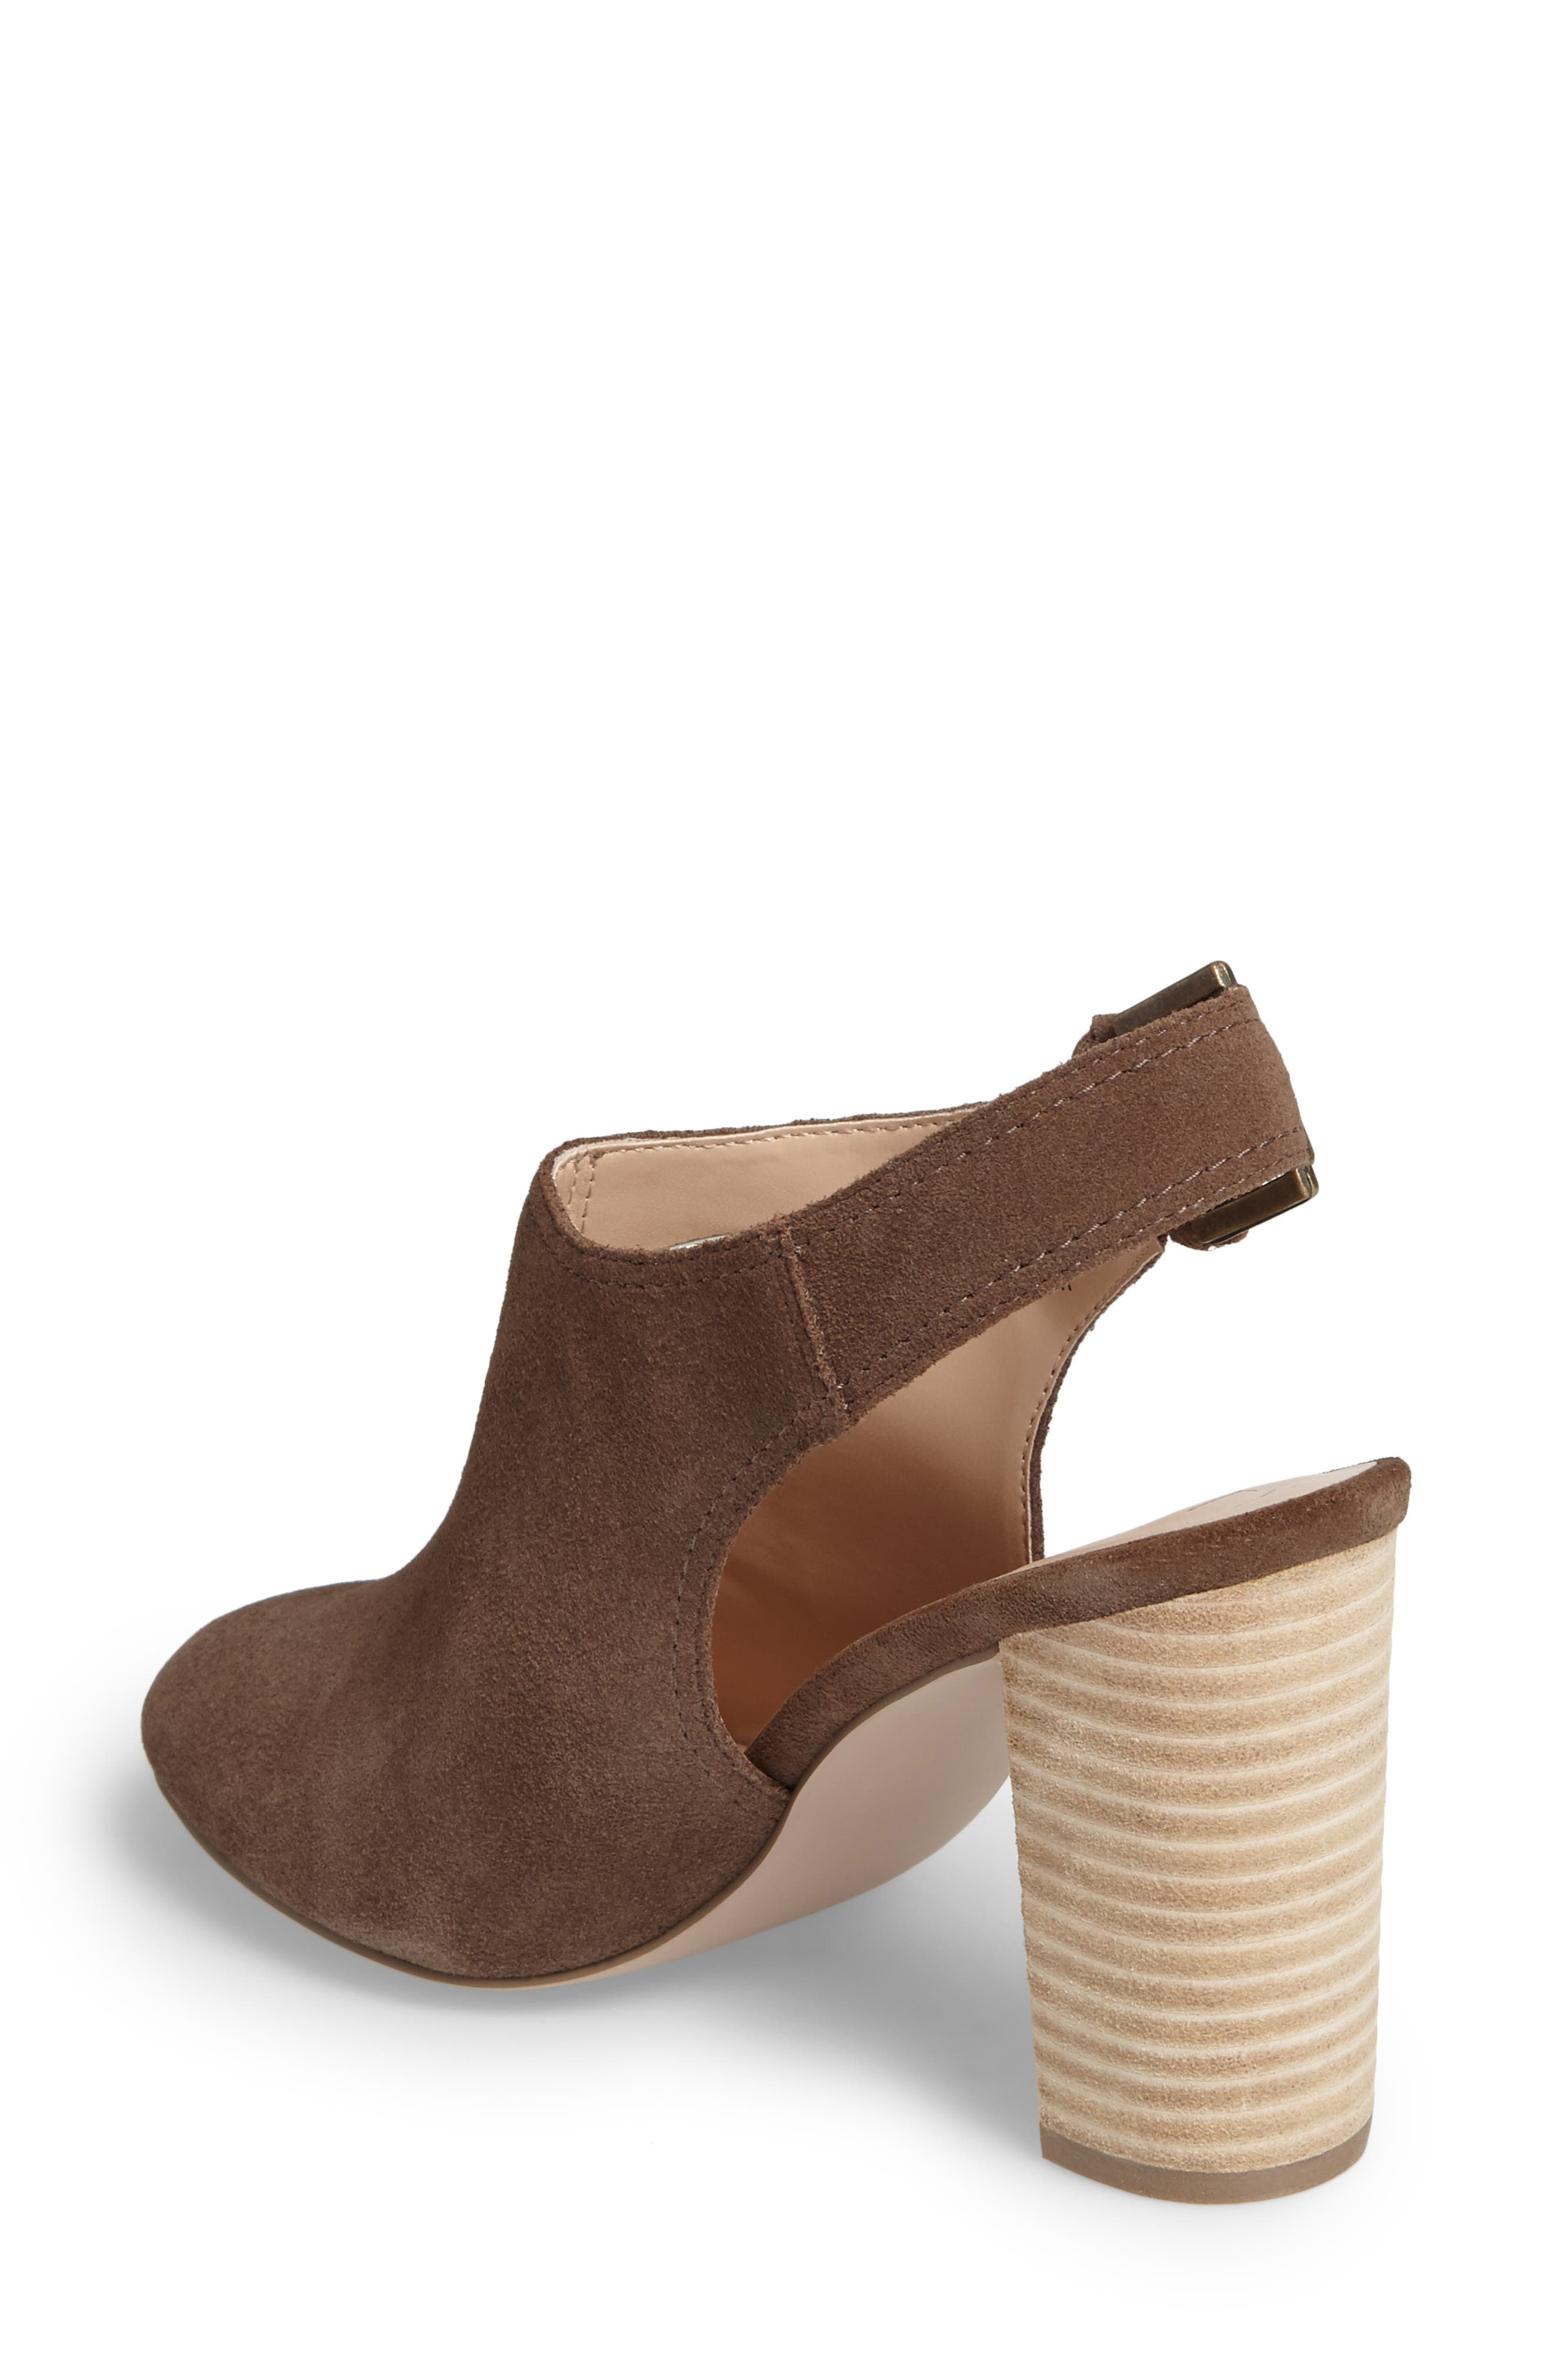 Apollo Slingback Bootie,                             Alternate thumbnail 2, color,                             Dark Taupe Suede Suede